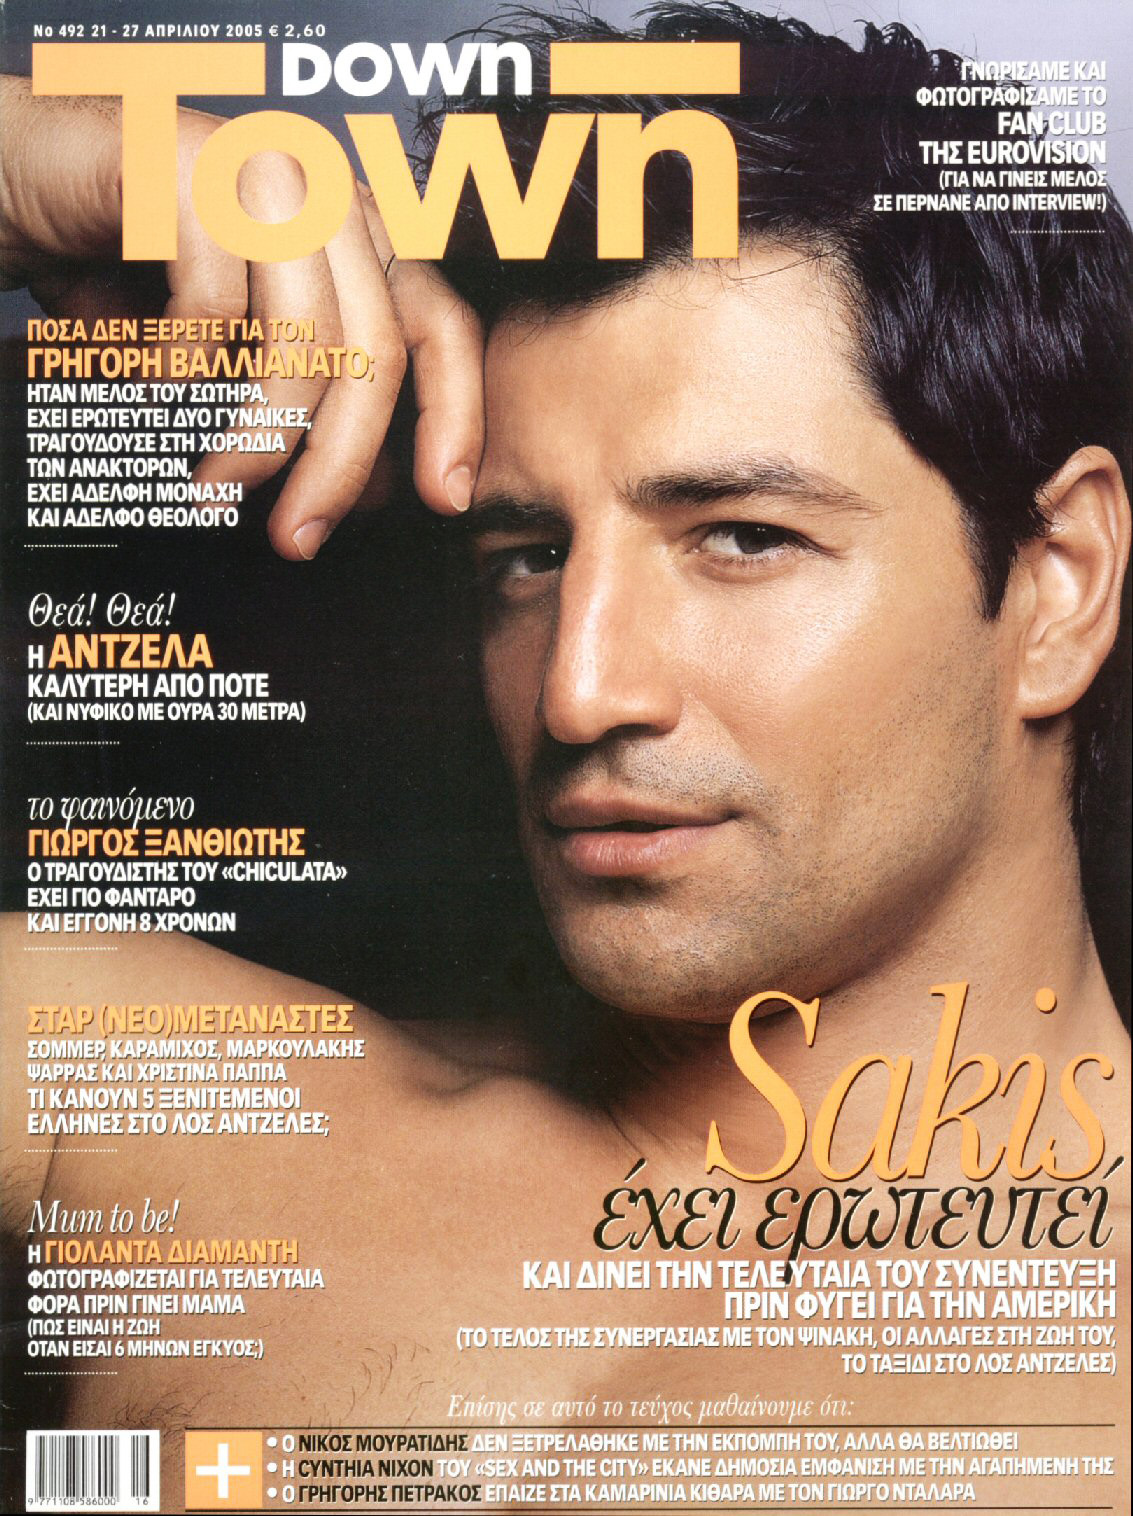 Sakis Rouvas photo #33610